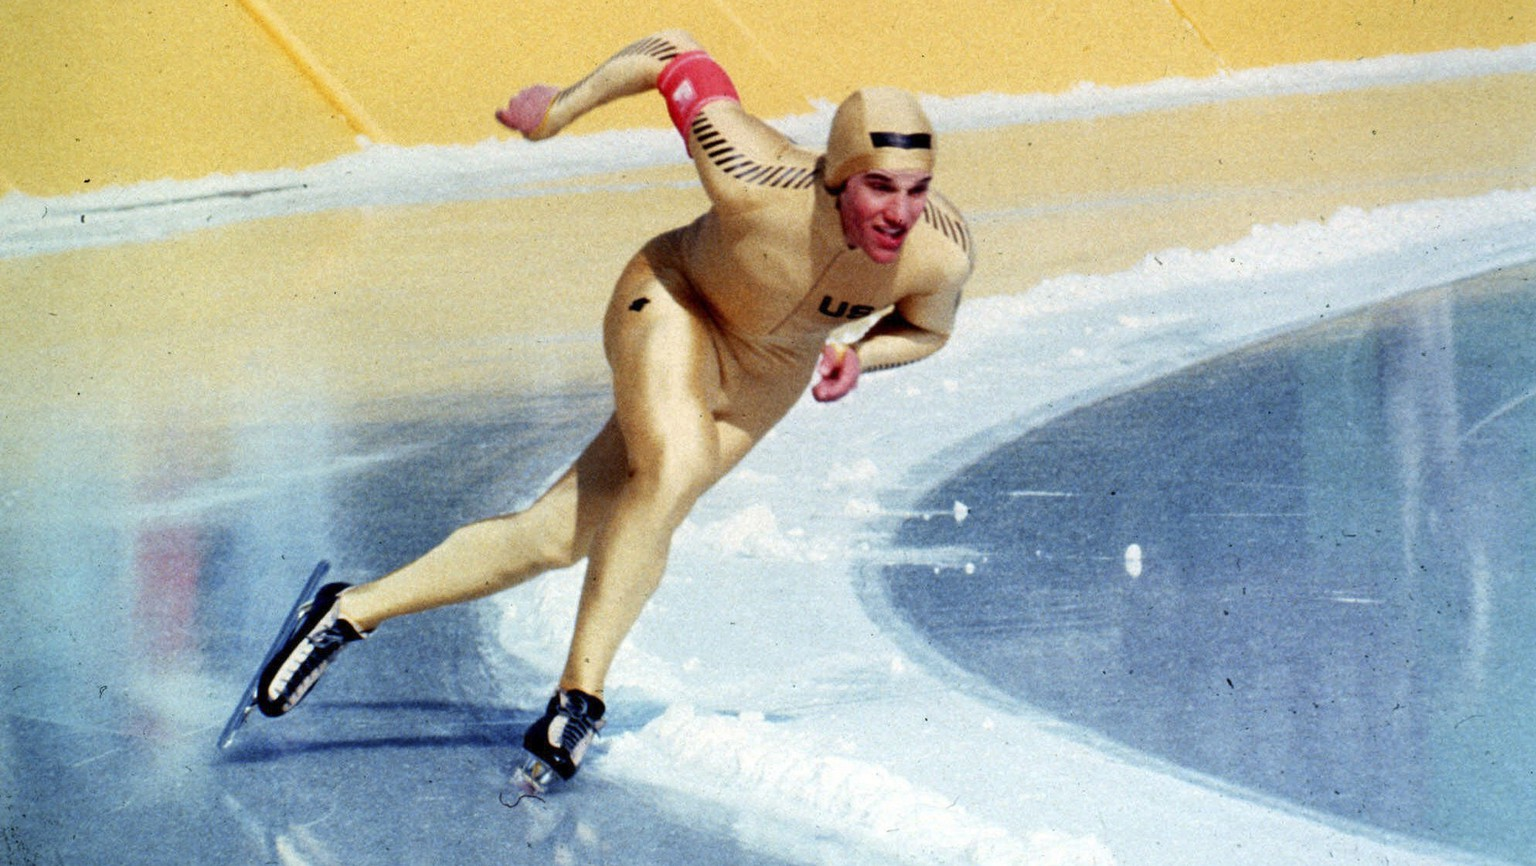 FILE – In this Feb. 21, 1980 file photo, U.S. Olympic Speedskater Eric Heiden skates in winning the 1500 meters speedskating event at Lake Placid, N.Y. Along with heiden, current speedskater Dutch Sven Kramer stands among one of the greatest speedskaters of all time. Kramer delicately framed his Olympic blunder for the ages four years ago in Vancouver when his coach inexplicably pointed him toward the wrong lane on a crossover and Kramer, just as inexplicably followed that road to Olympic ruin. Now, he has 15 days in which to turn that failure into the redemption story of the games, starting with Saturday's 5,000 meters, where he is the defending champion. (AP Photo/File)